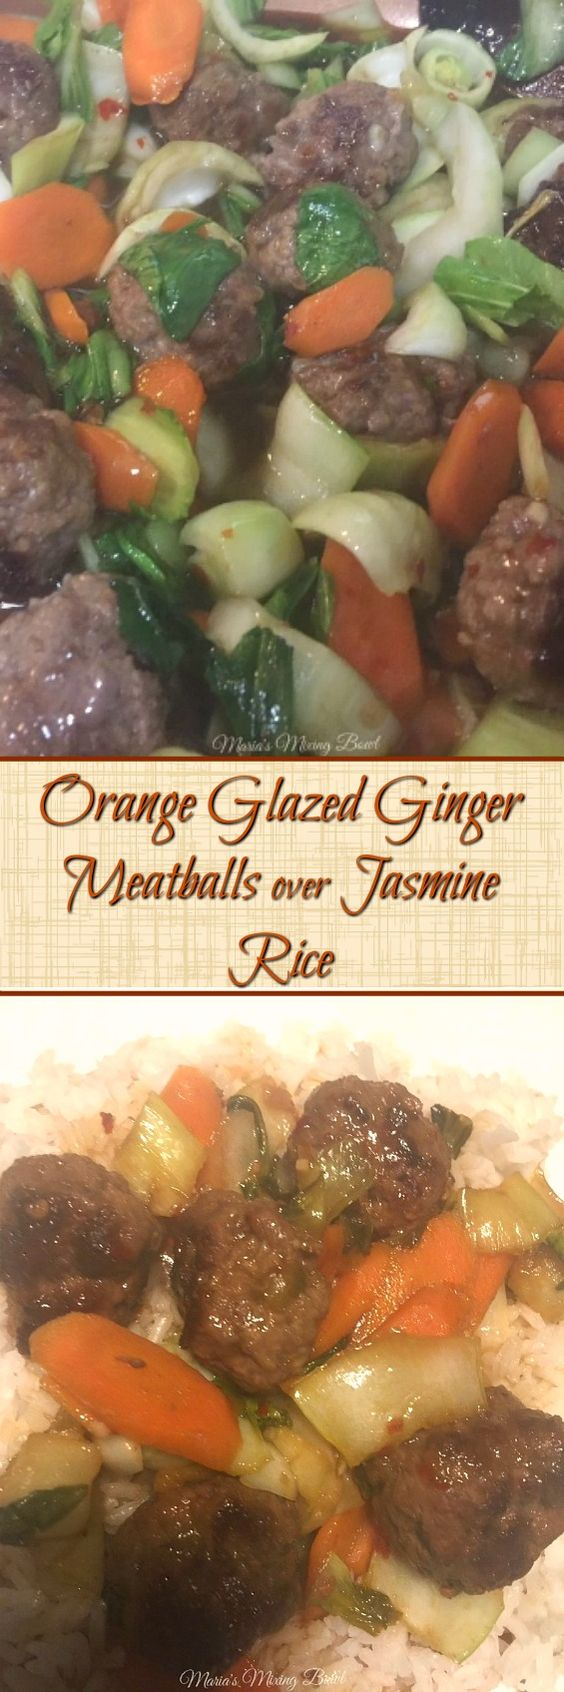 Orange Glazed Ginger Meatballs over Jasmine Rice -  Delicious weeknight dinner that came together in less than 20 minutes!  We have all agreed that this is one of our favorite meals